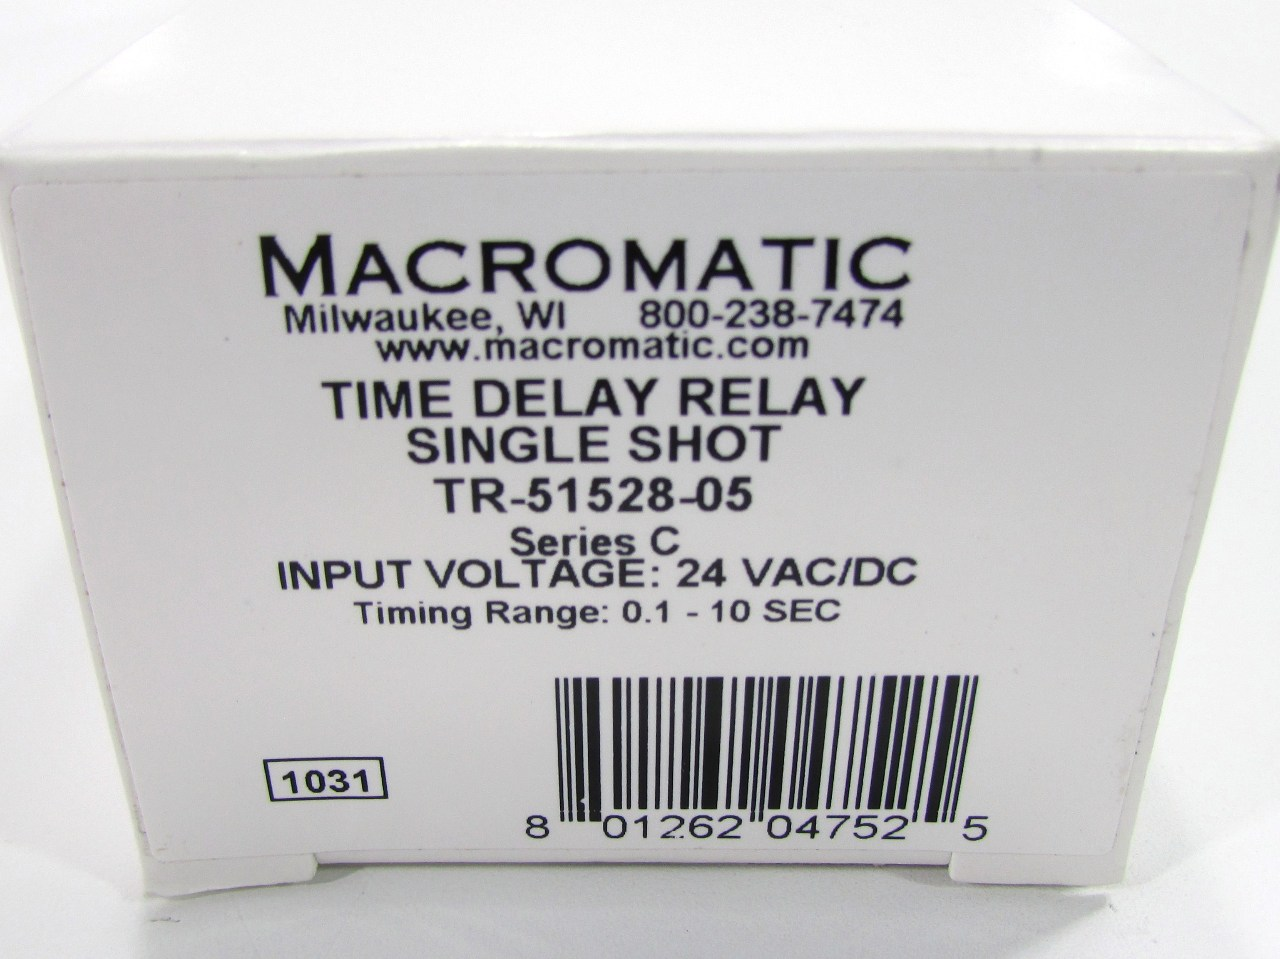 NEW MACROMATIC TR-51528-05 TIME DELAY RELAY, DPDT, 10SEC, 24VAC/DC